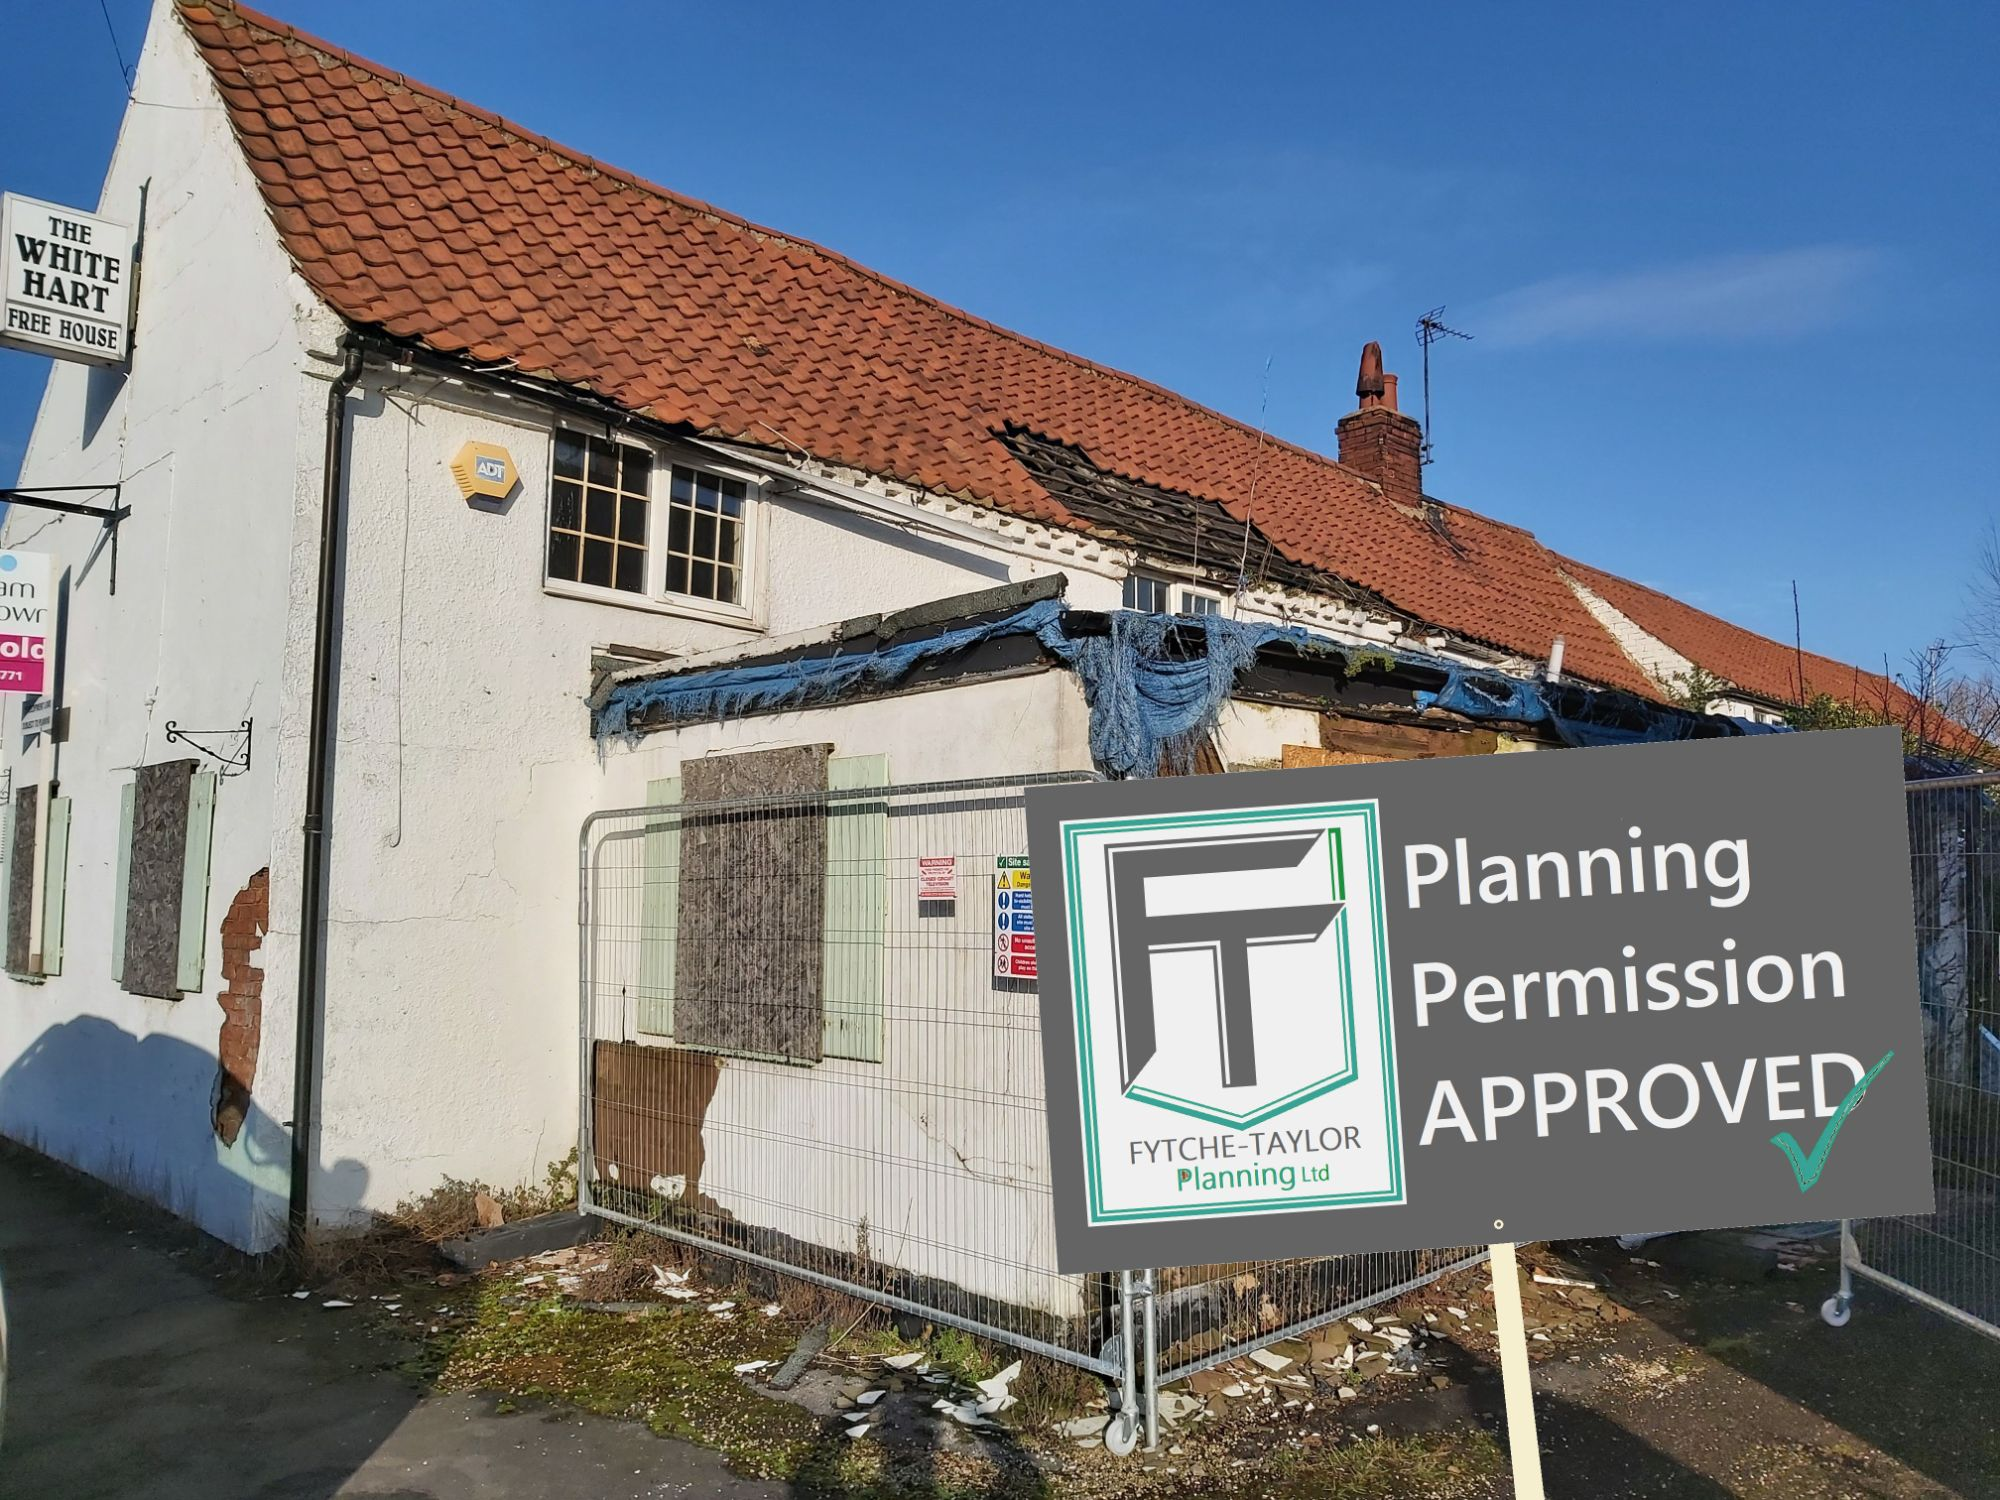 Former White Hart Hotel in Newton on Trent near Lincoln. Planning application approved and permission granted for conversion to 3 new homes.